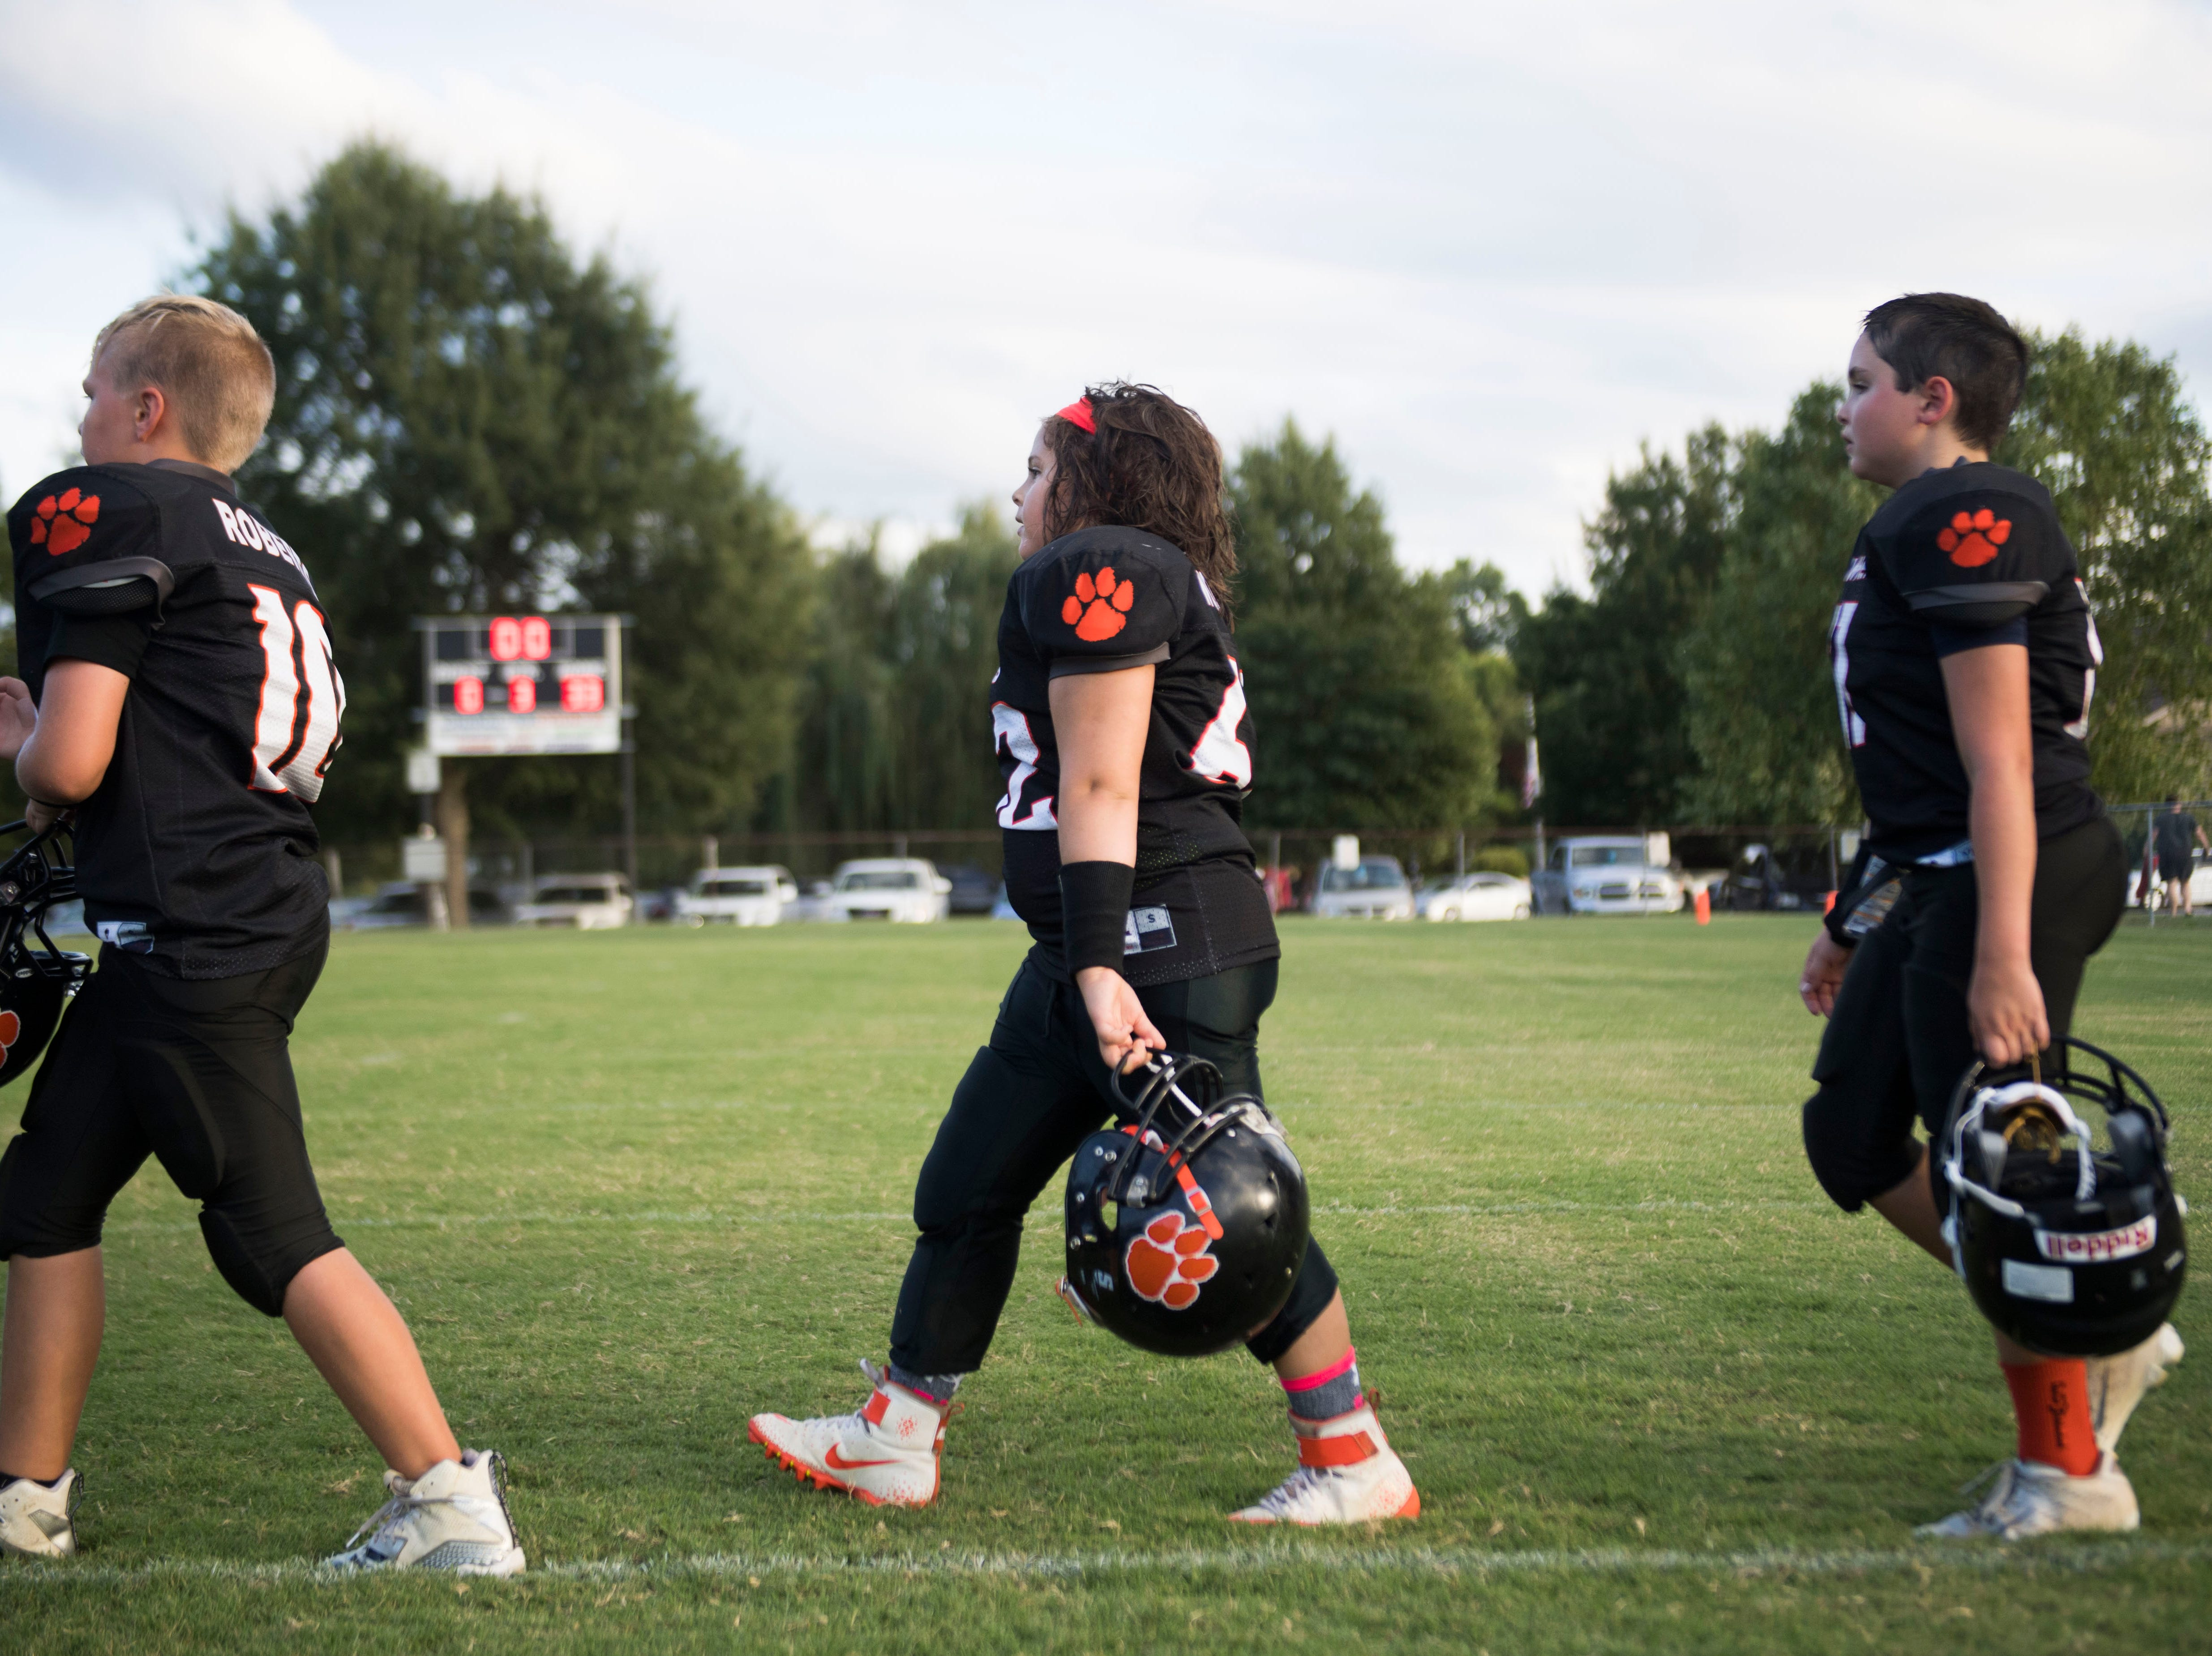 Ava Wooten, 9, of Powell, walks on the field with her 9U Powell Youth football team Tuesday, Sept. 11, 2018. Wooten is the only girl on her team.